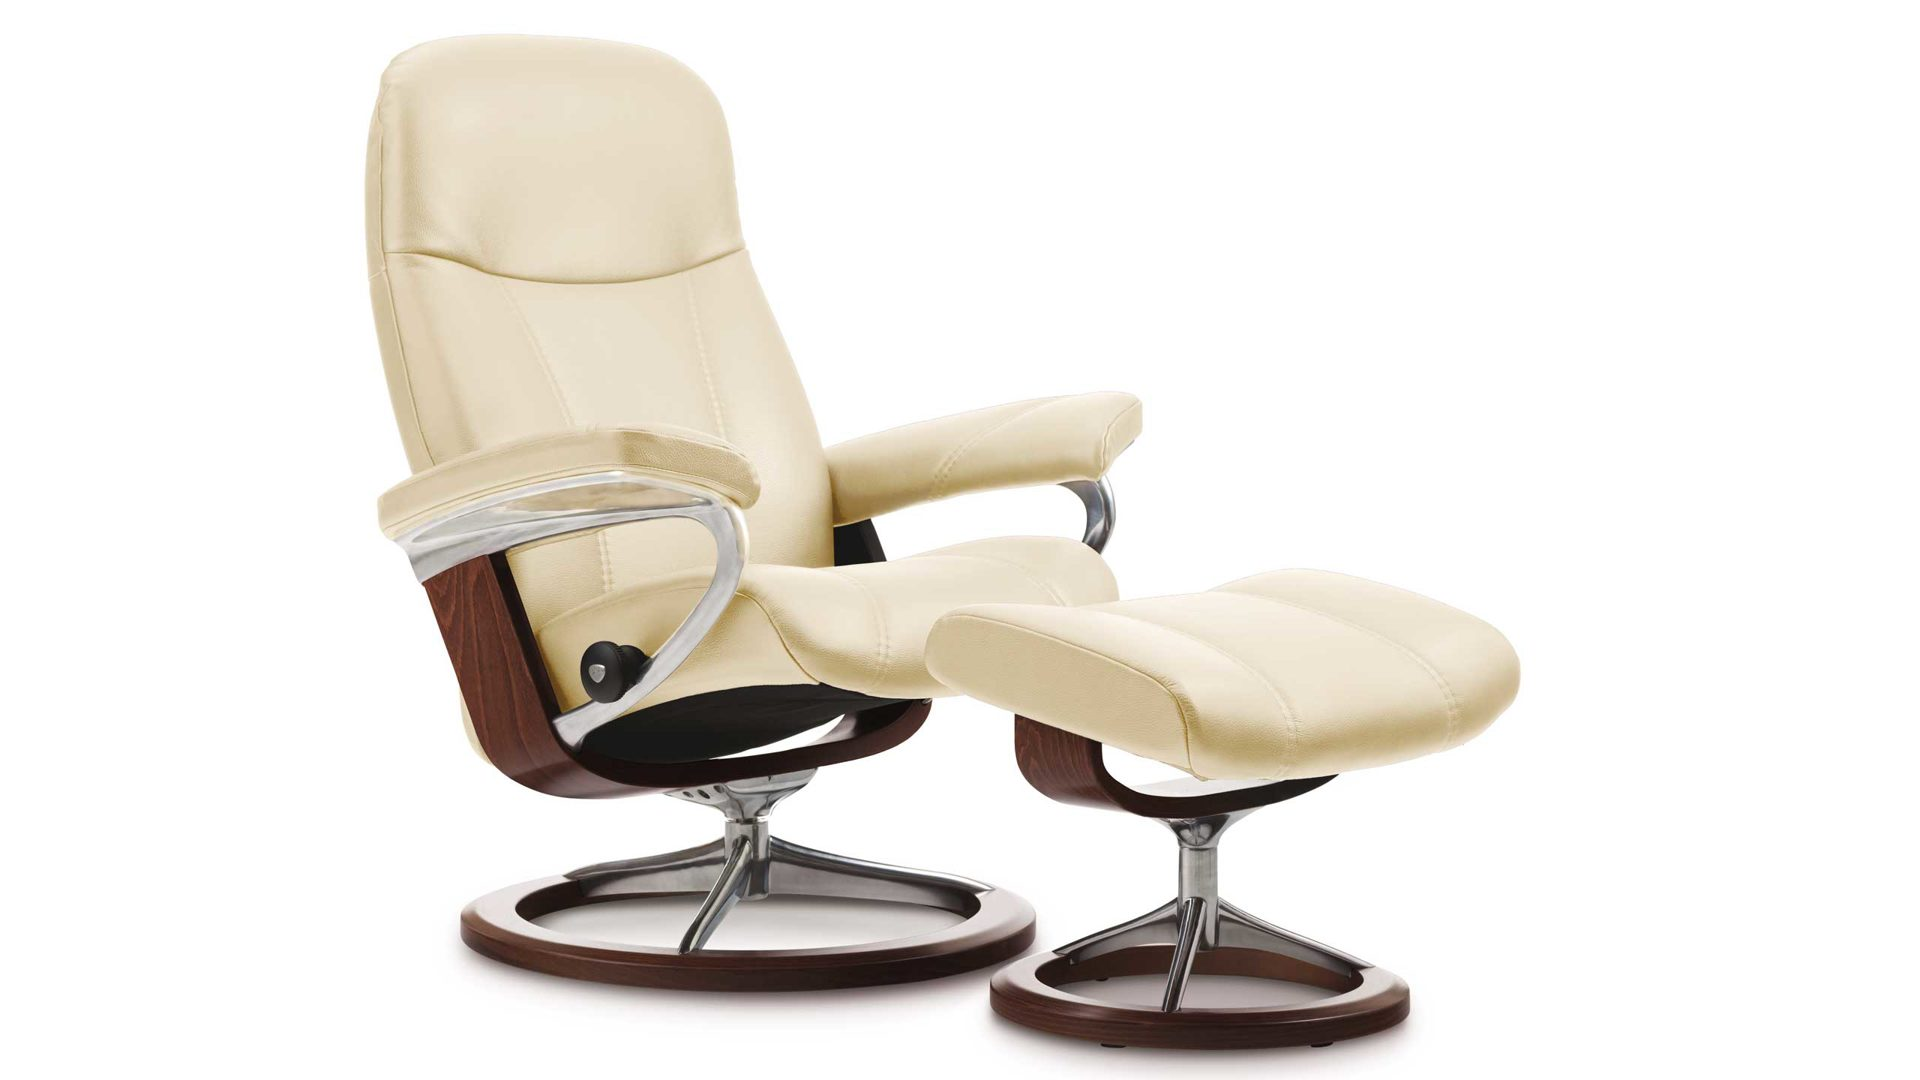 Stressless Sessel Mit Hocker Stressless Consul M Signature Relax Sessel Und Hocker Leder Medium Leder Batik 093 Cream 13 Gestell Signature Buche Braun